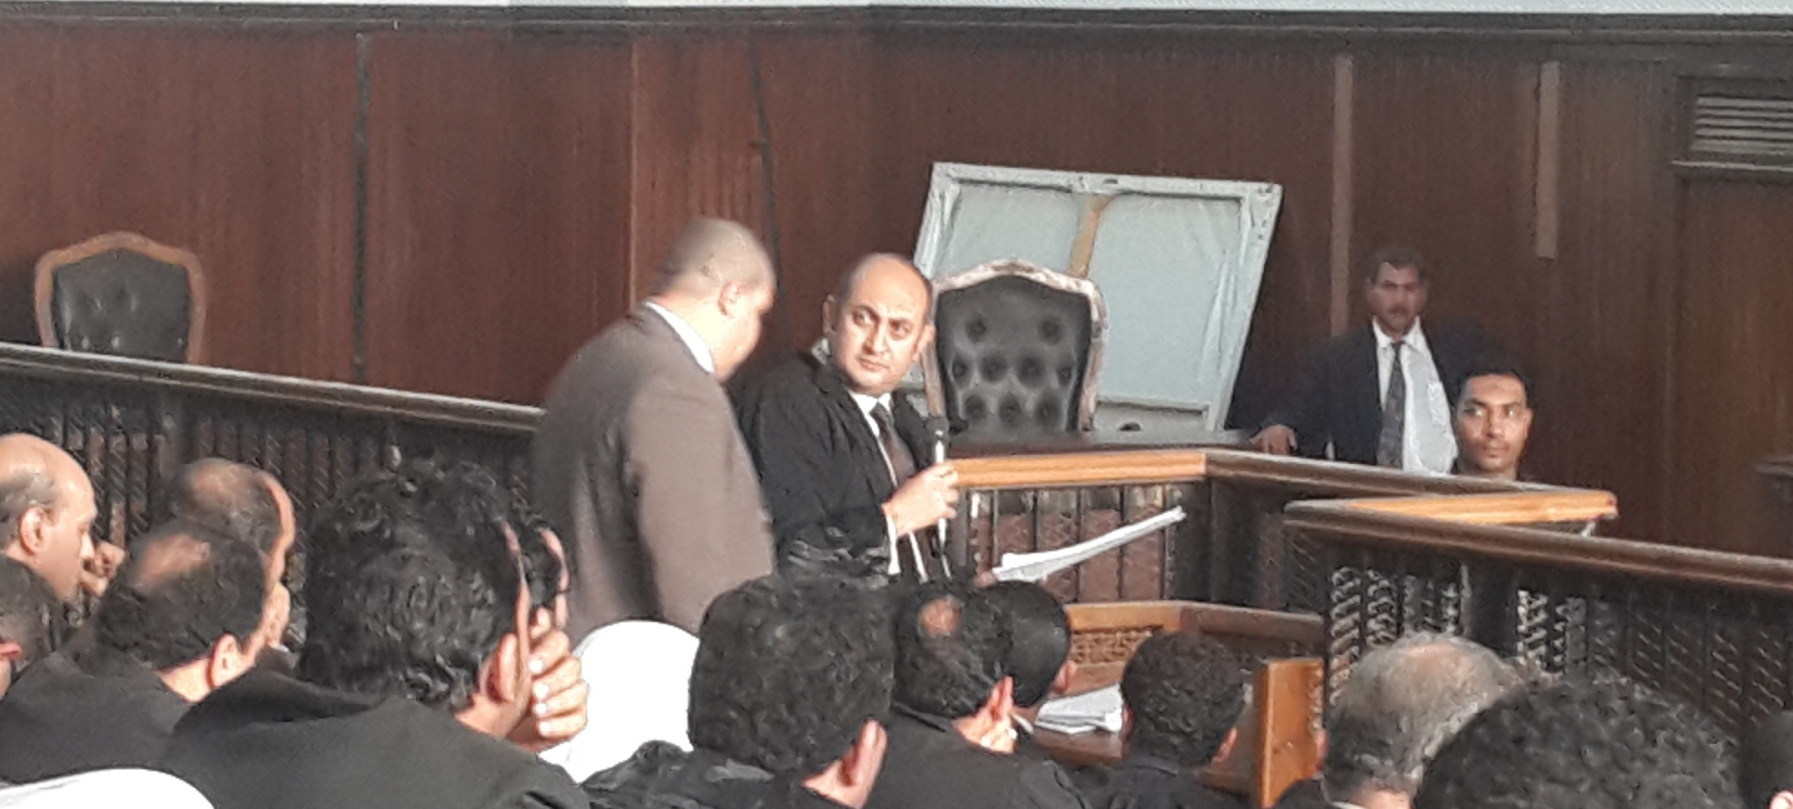 Prominent defence lawyer and former presidential candidate Khaled Ali makes claim in court. Photo by DNE.